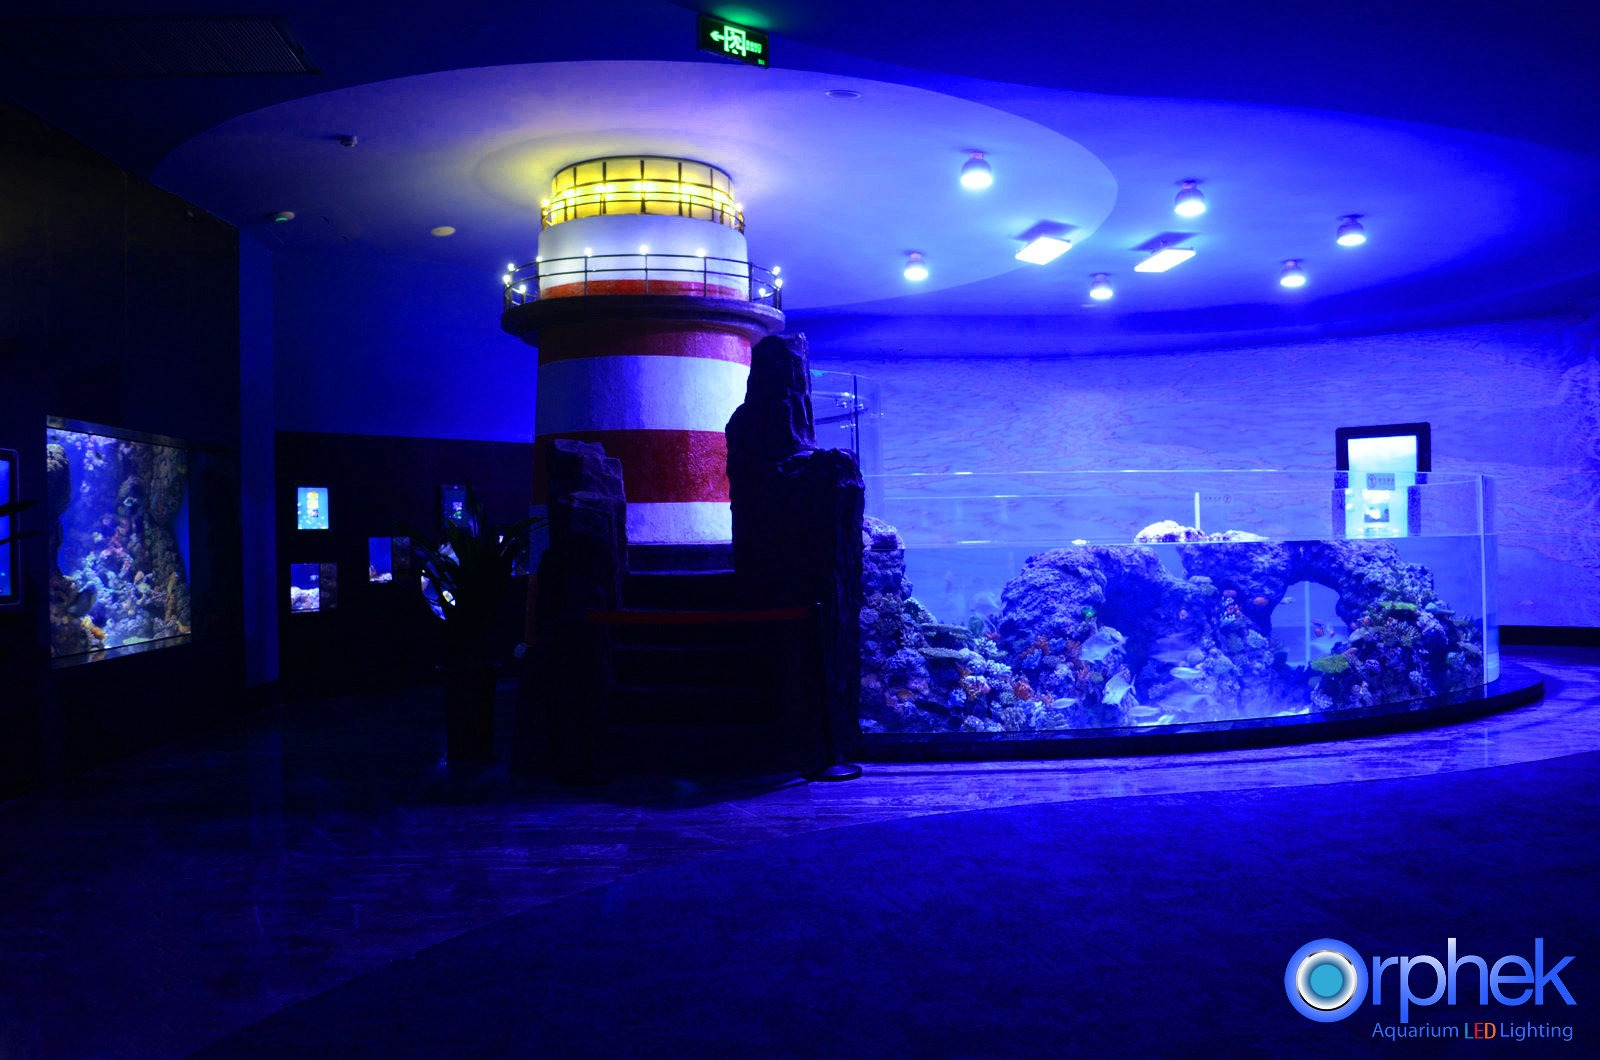 chengdu-public-aquarium-LED-lighting-tropical -sea- జోన్- 15